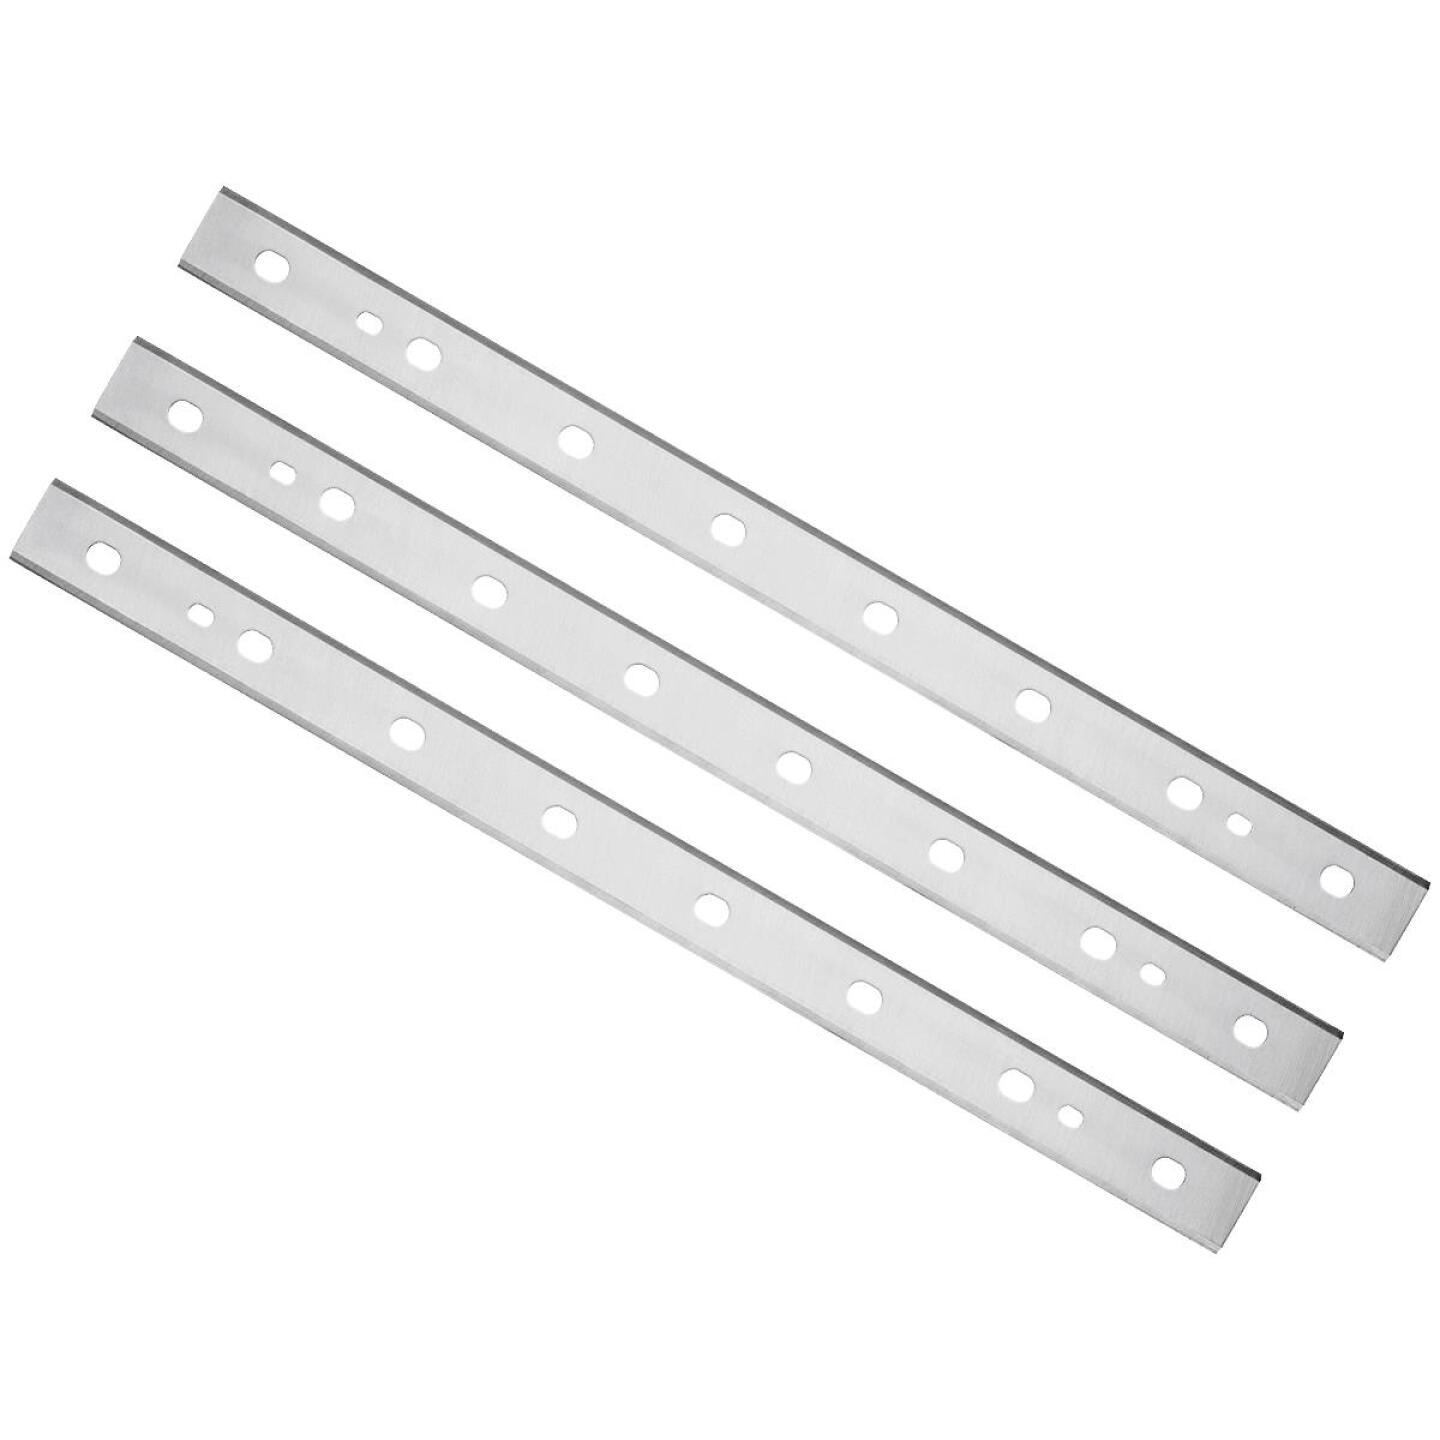 DeWalt 13 In. High Speed Steel Planer Blade (3-Pack) Image 1